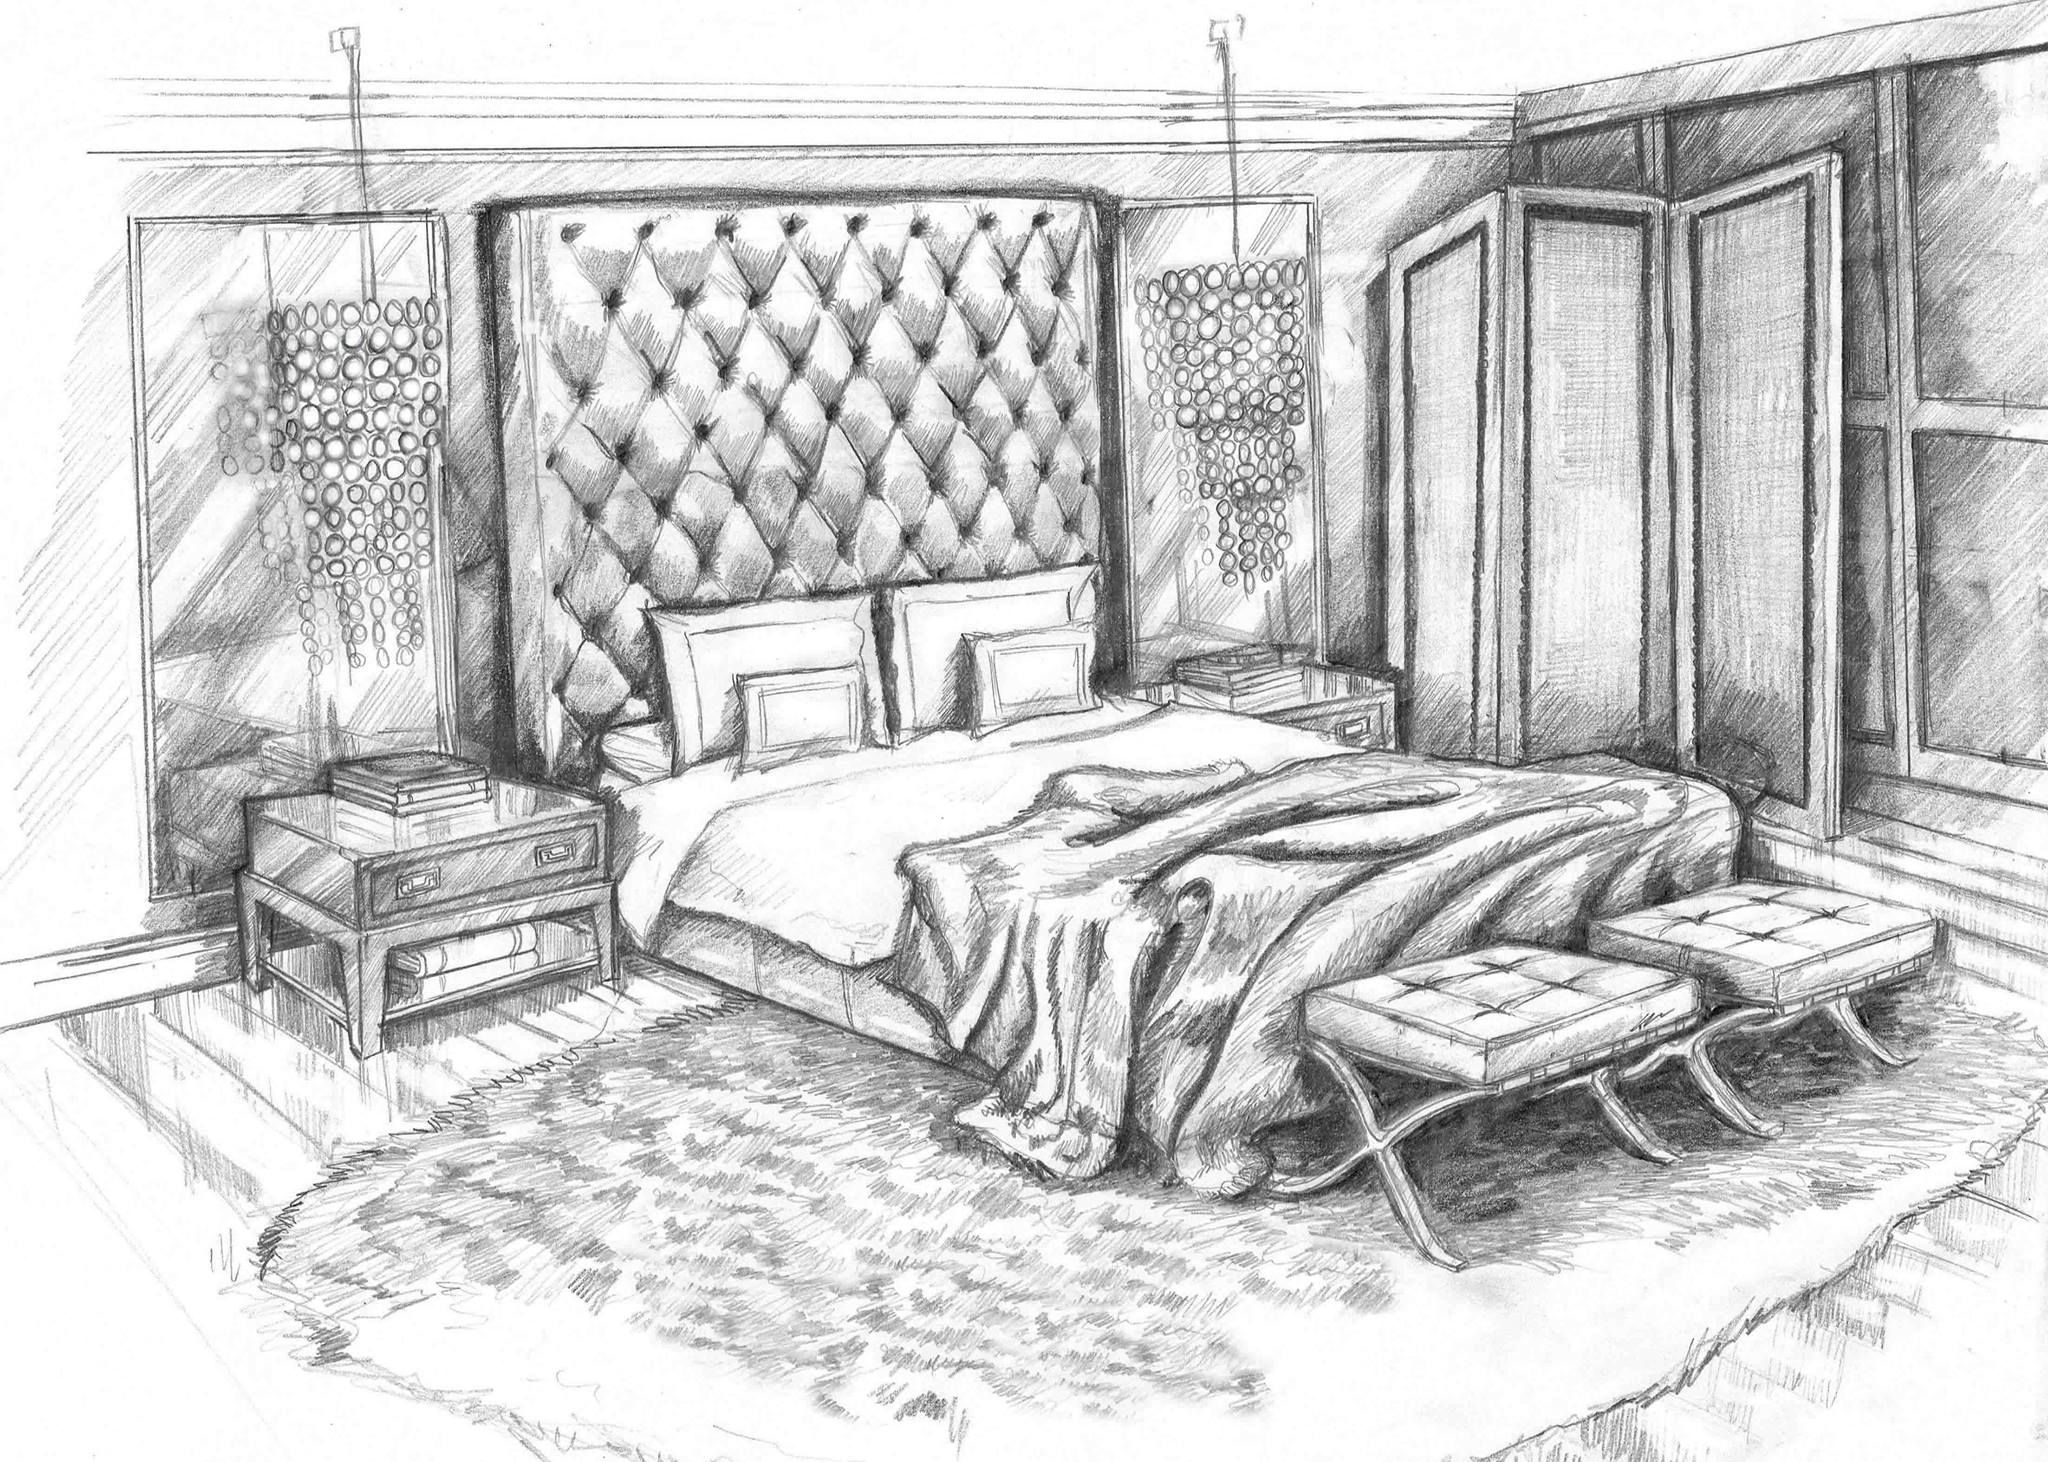 Pencil sketch art master bedroom concept design visual by for 3d bedroom drawing